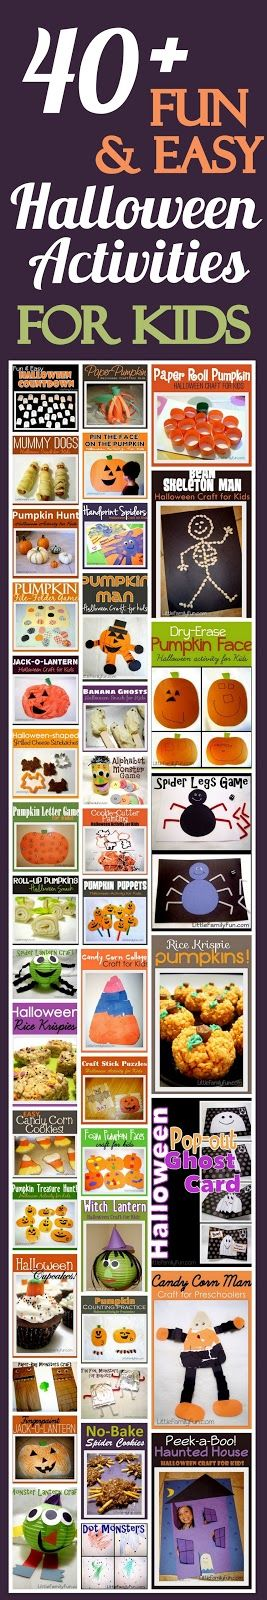 40+ Halloween Activities for Kids